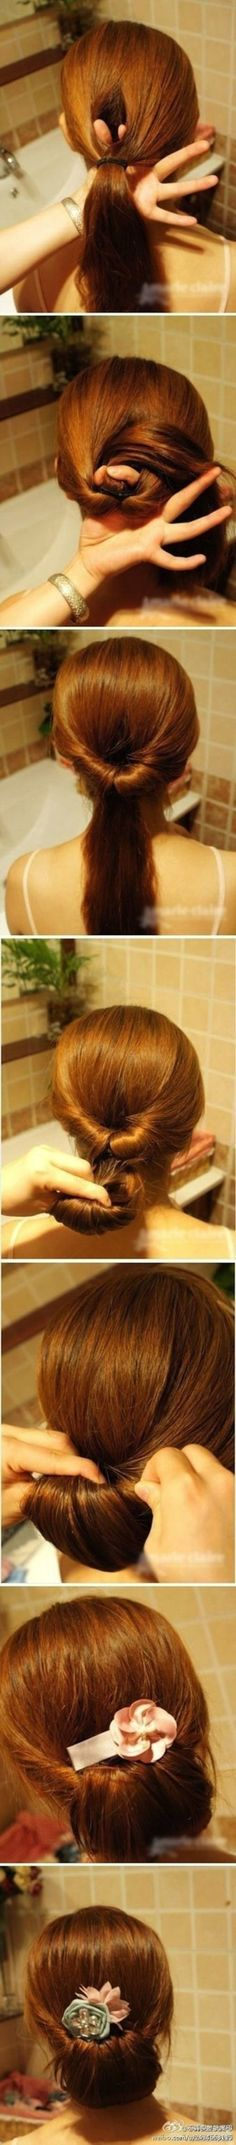 Easy updo.  Split pony bun